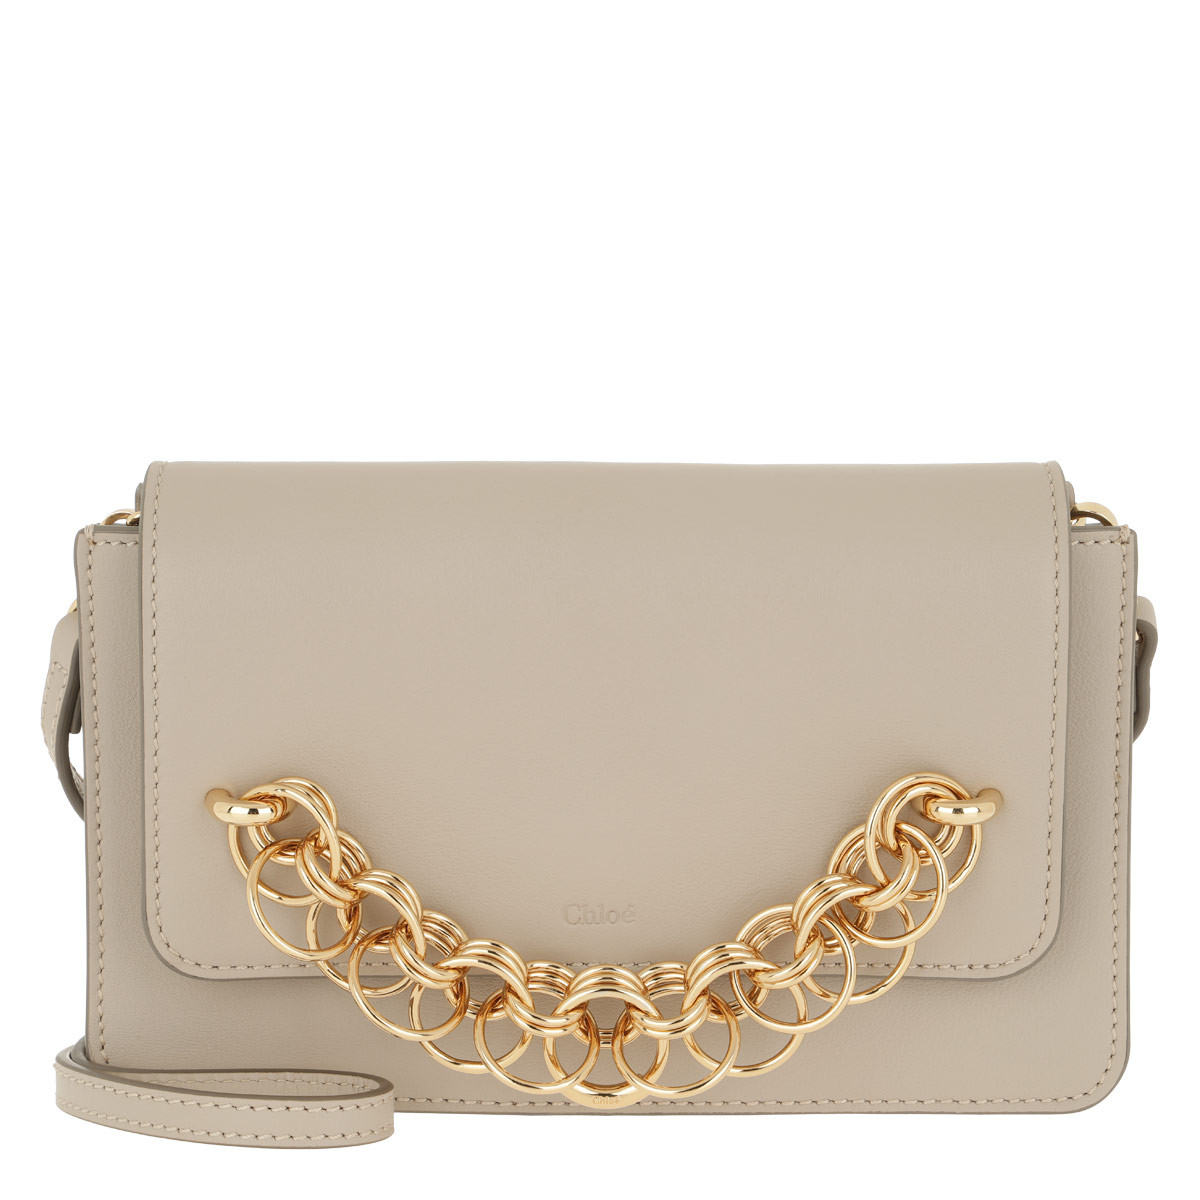 Chloé Clutch - Drew Bijou Clutch Leather Pastel Grey - in beige - für Damen